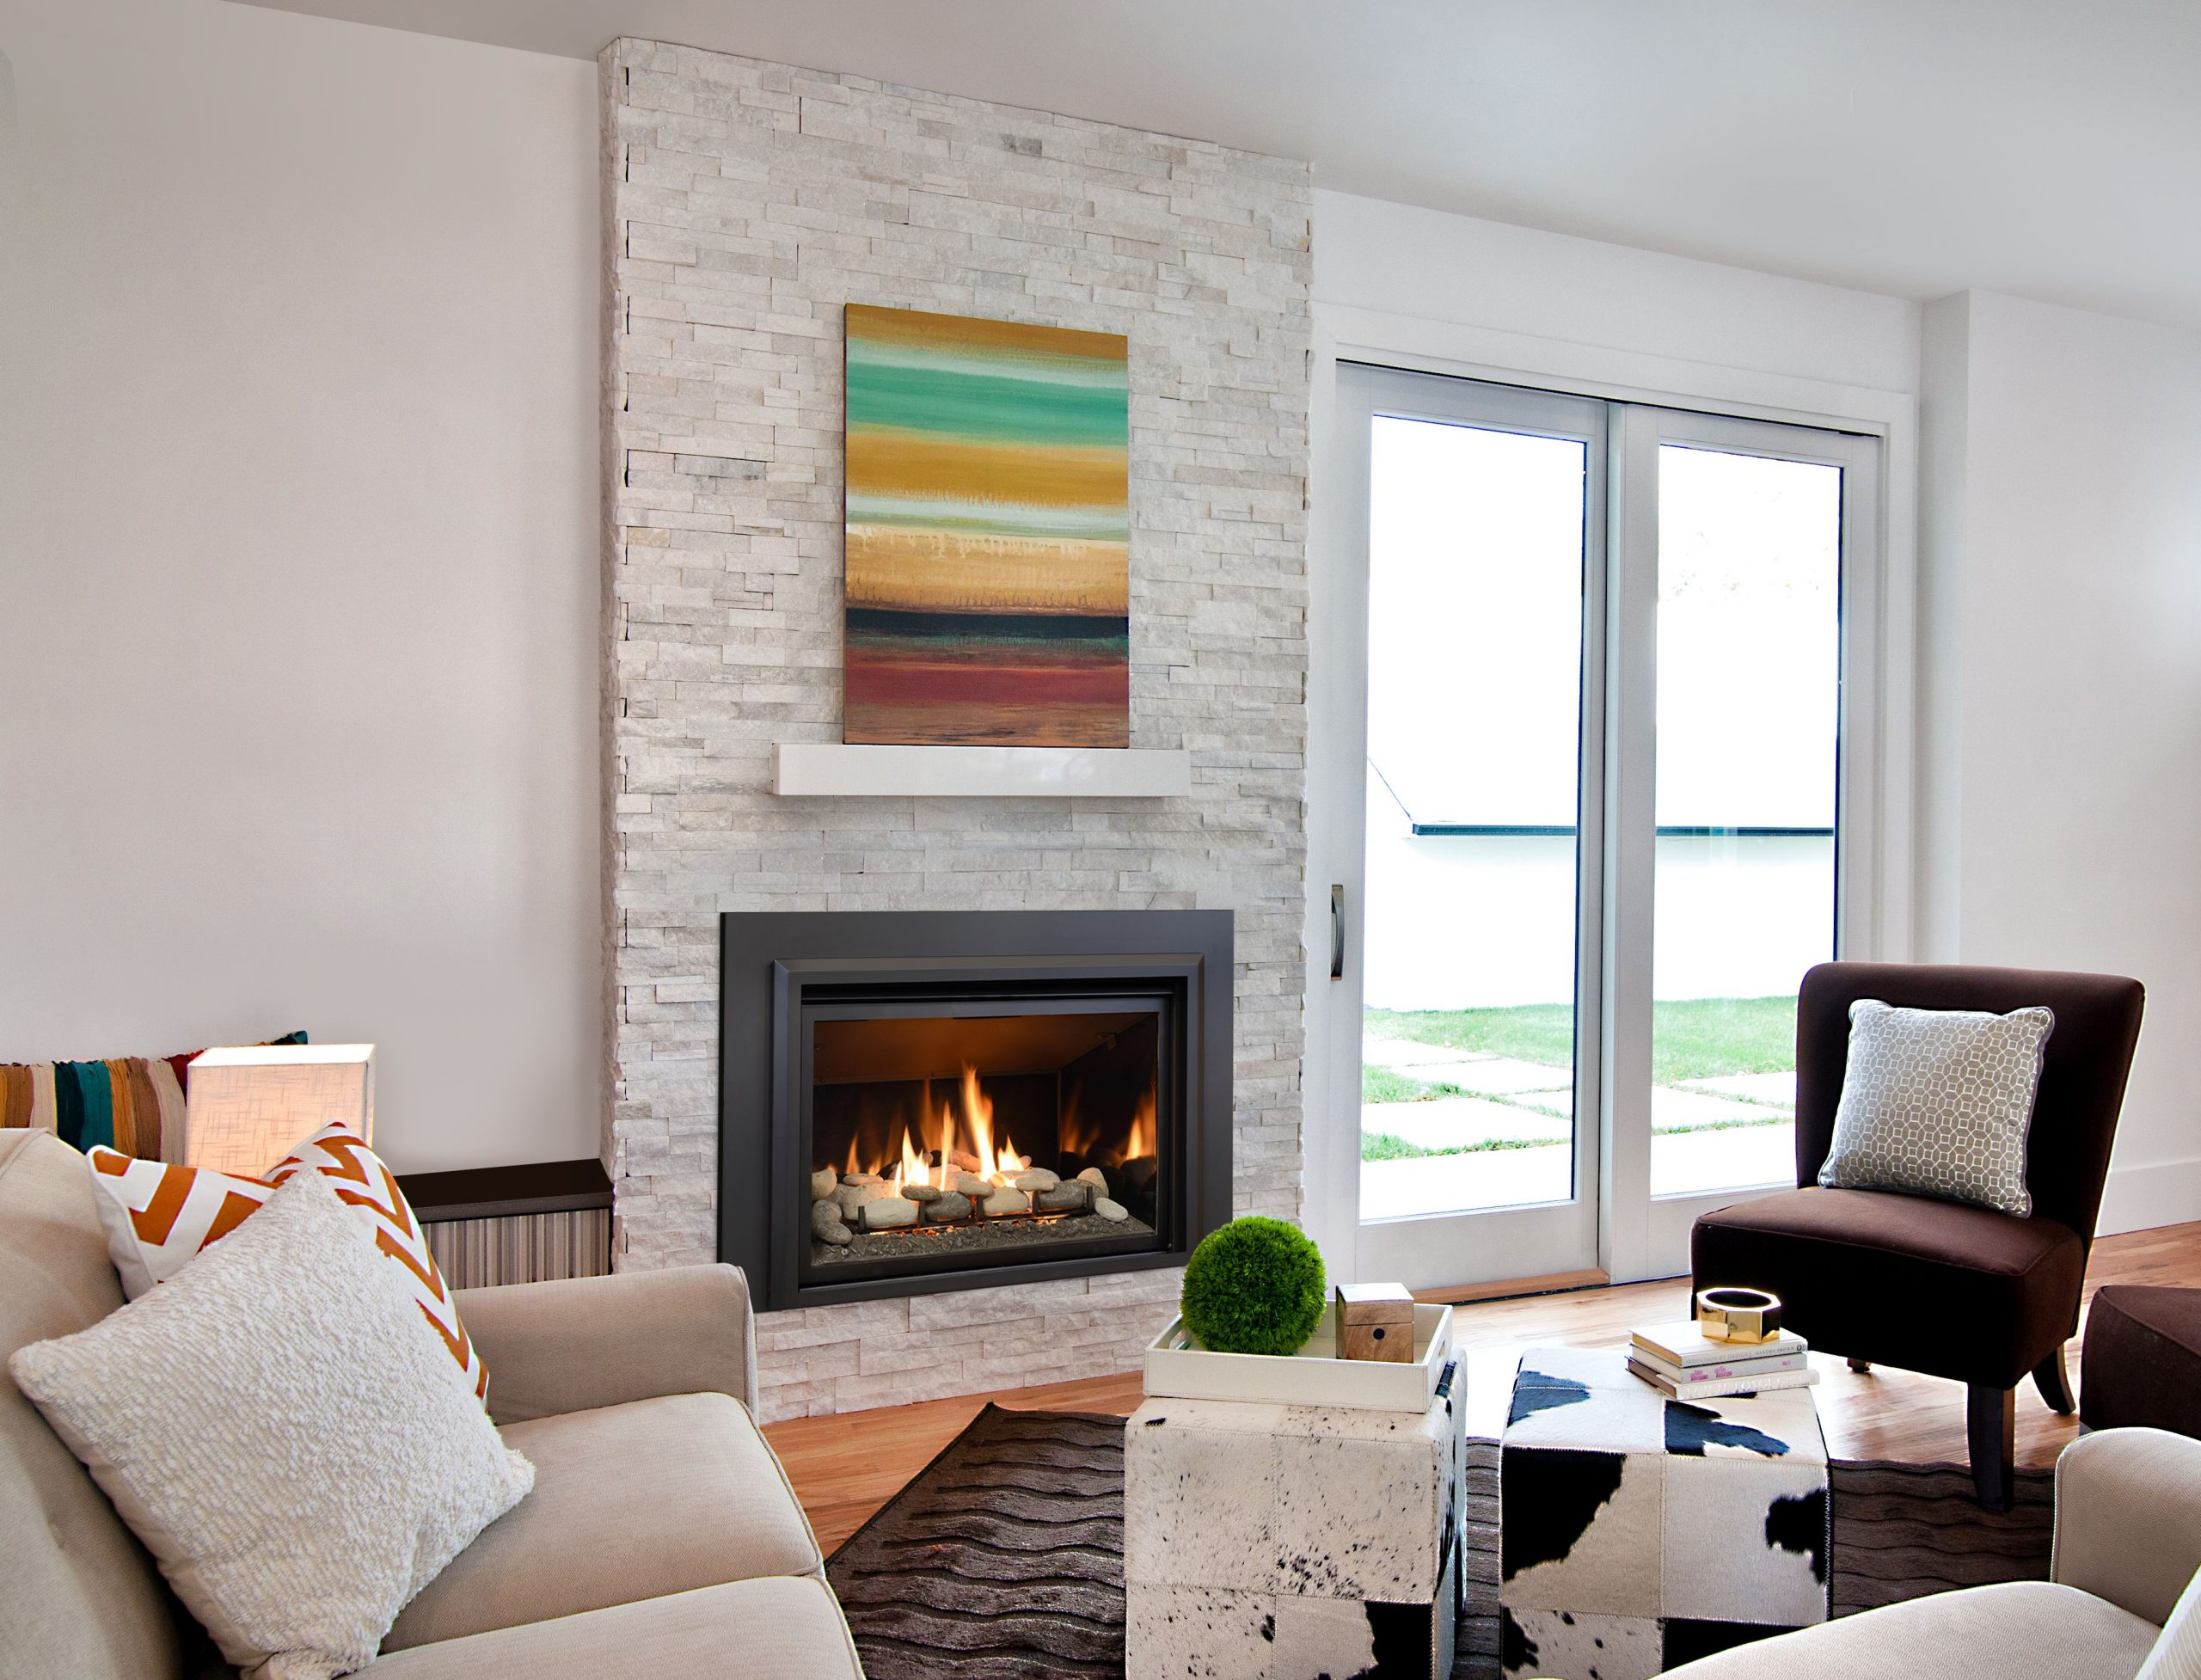 What to Look For When Buying a Fireplace